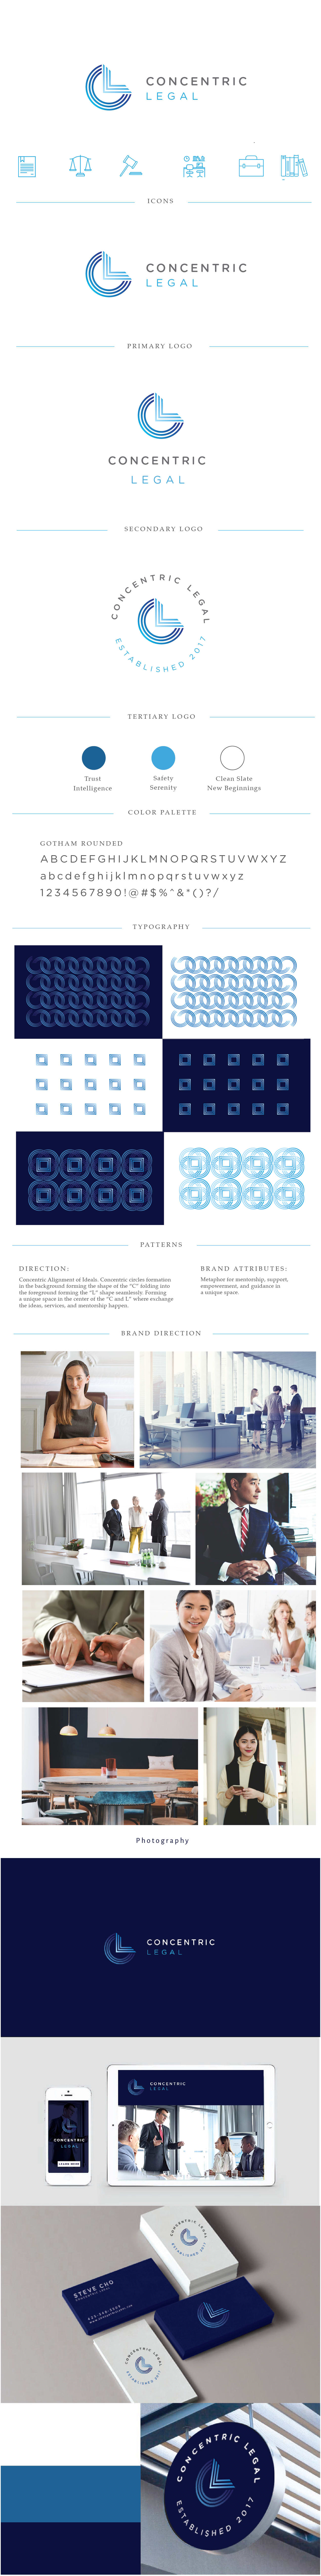 Concentric Legal Branding and Strategy